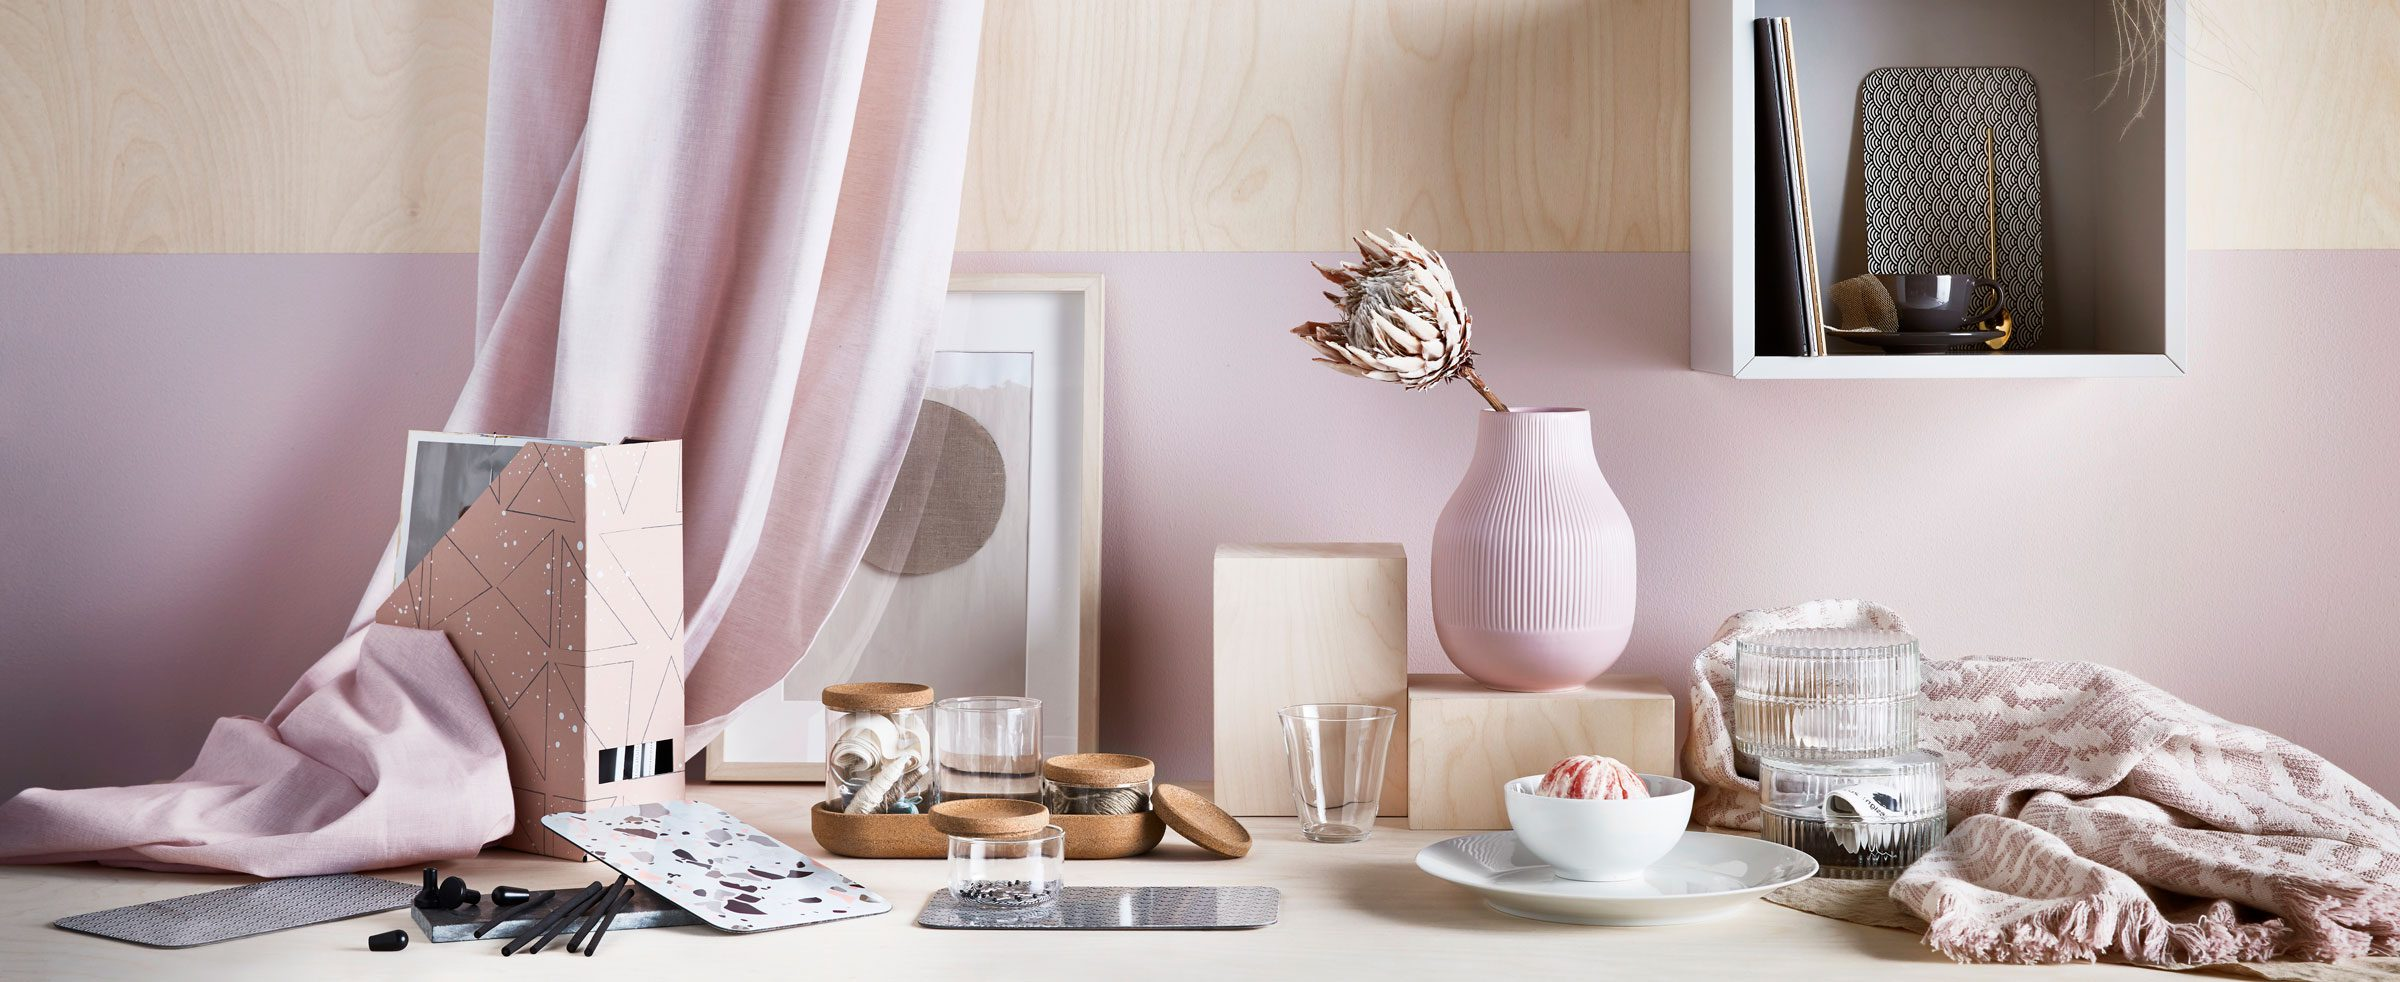 various-smaller-ikea-products-in-a-pink-tone-setting